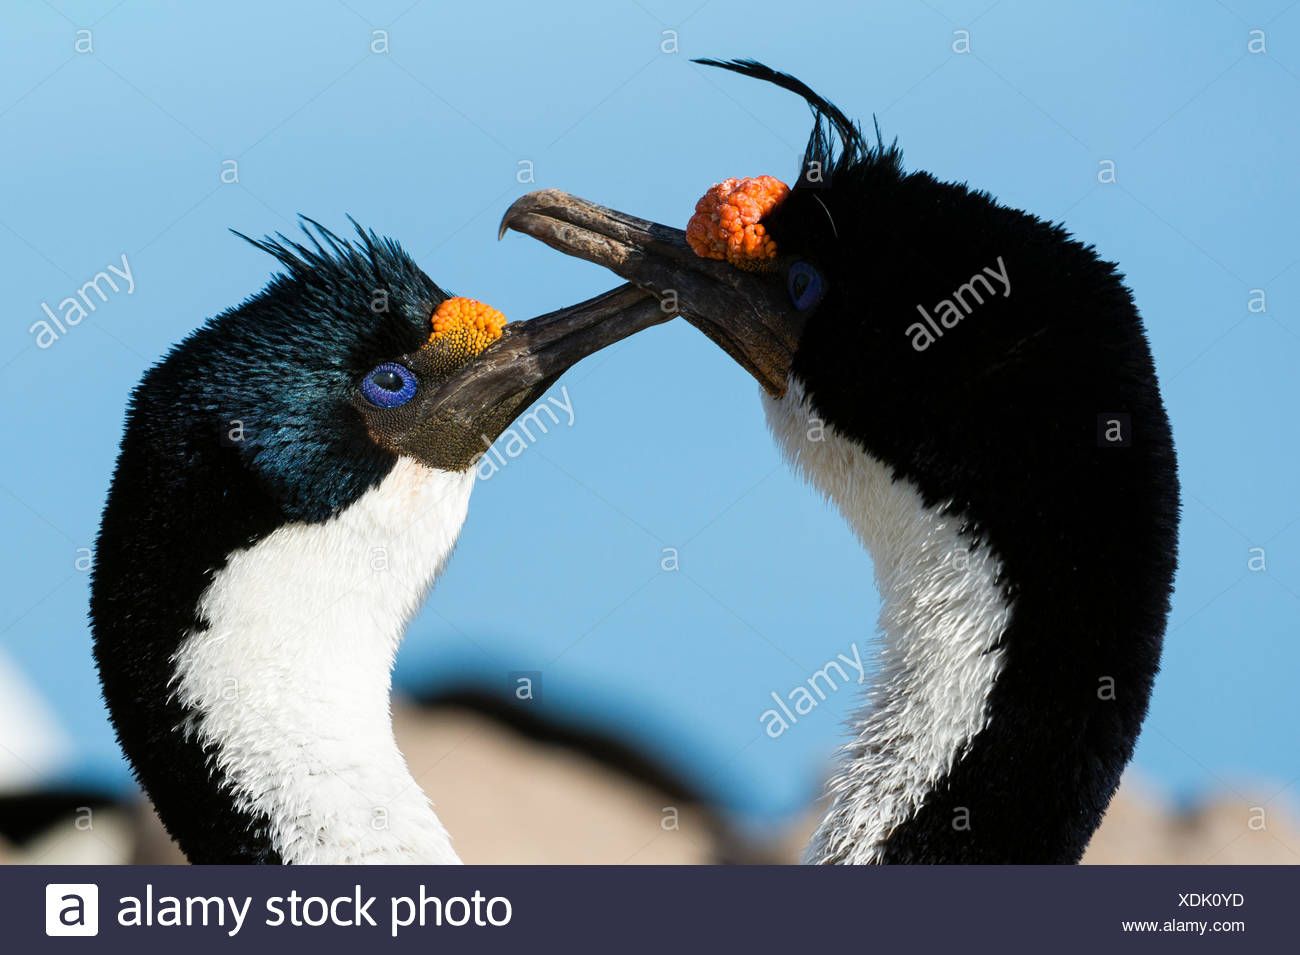 Imperial shag pair, Leucocarbo atriceps, courting. - Stock Image